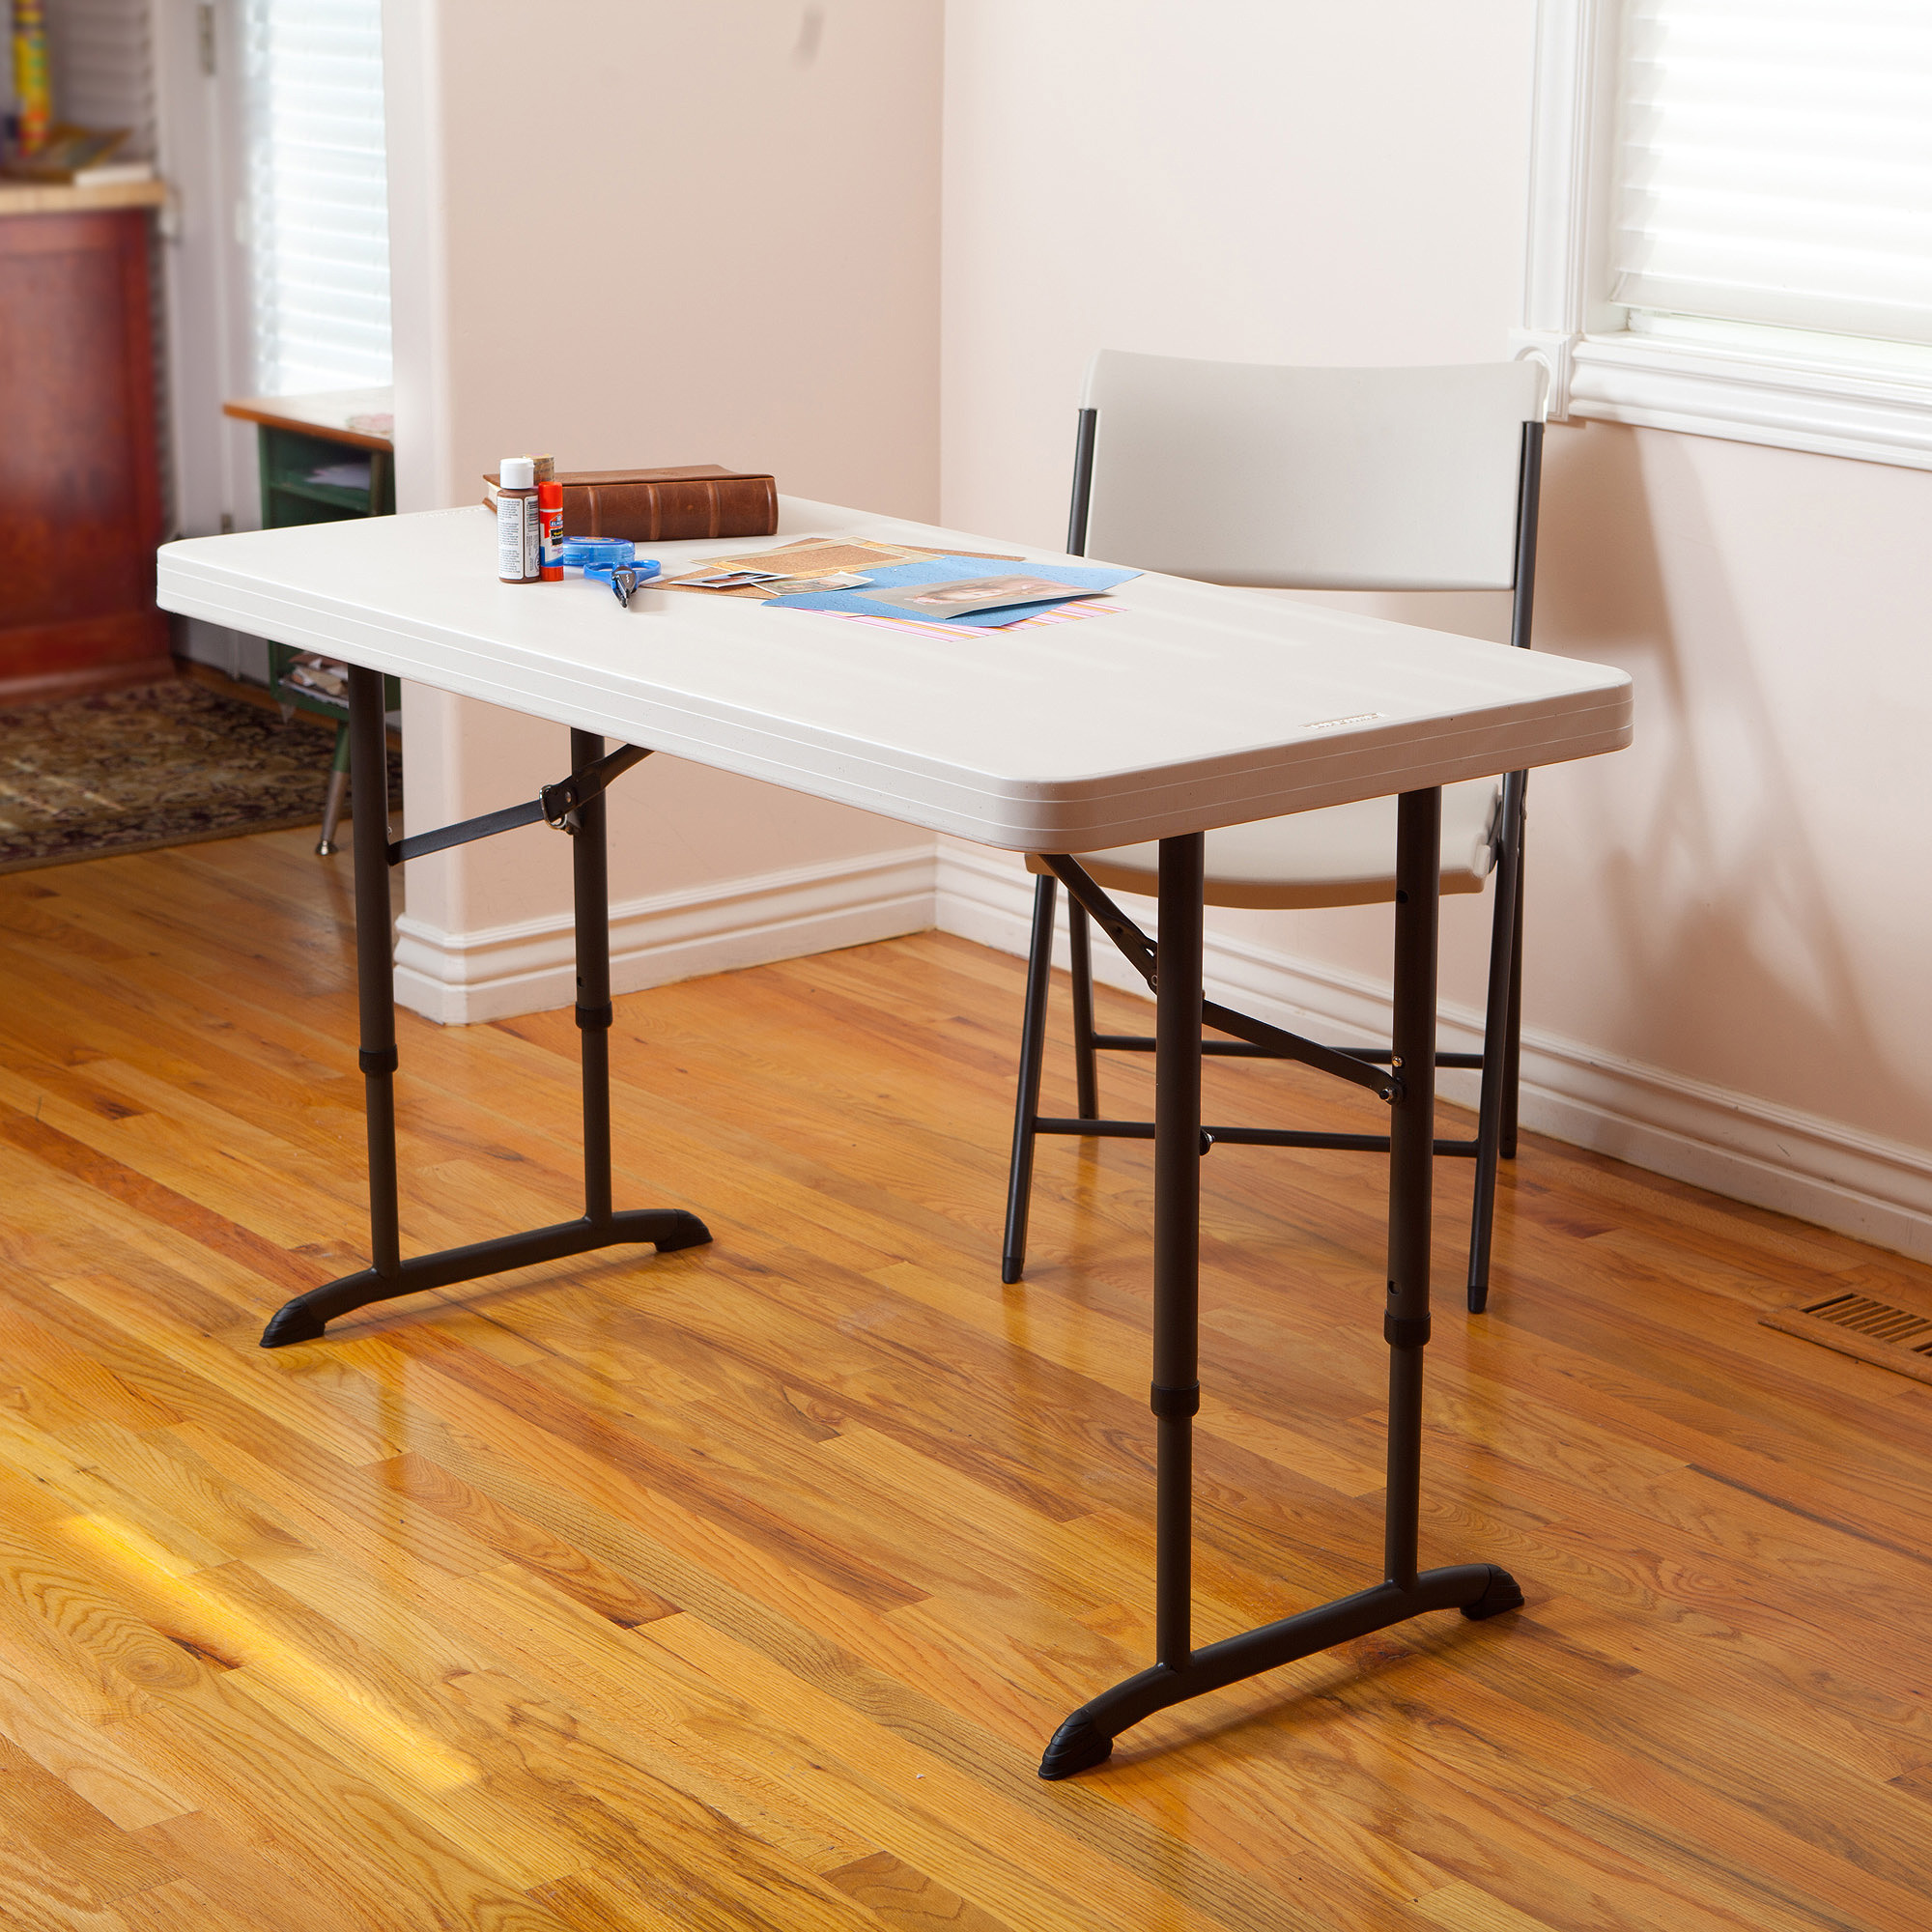 How to buy adjustable height folding table